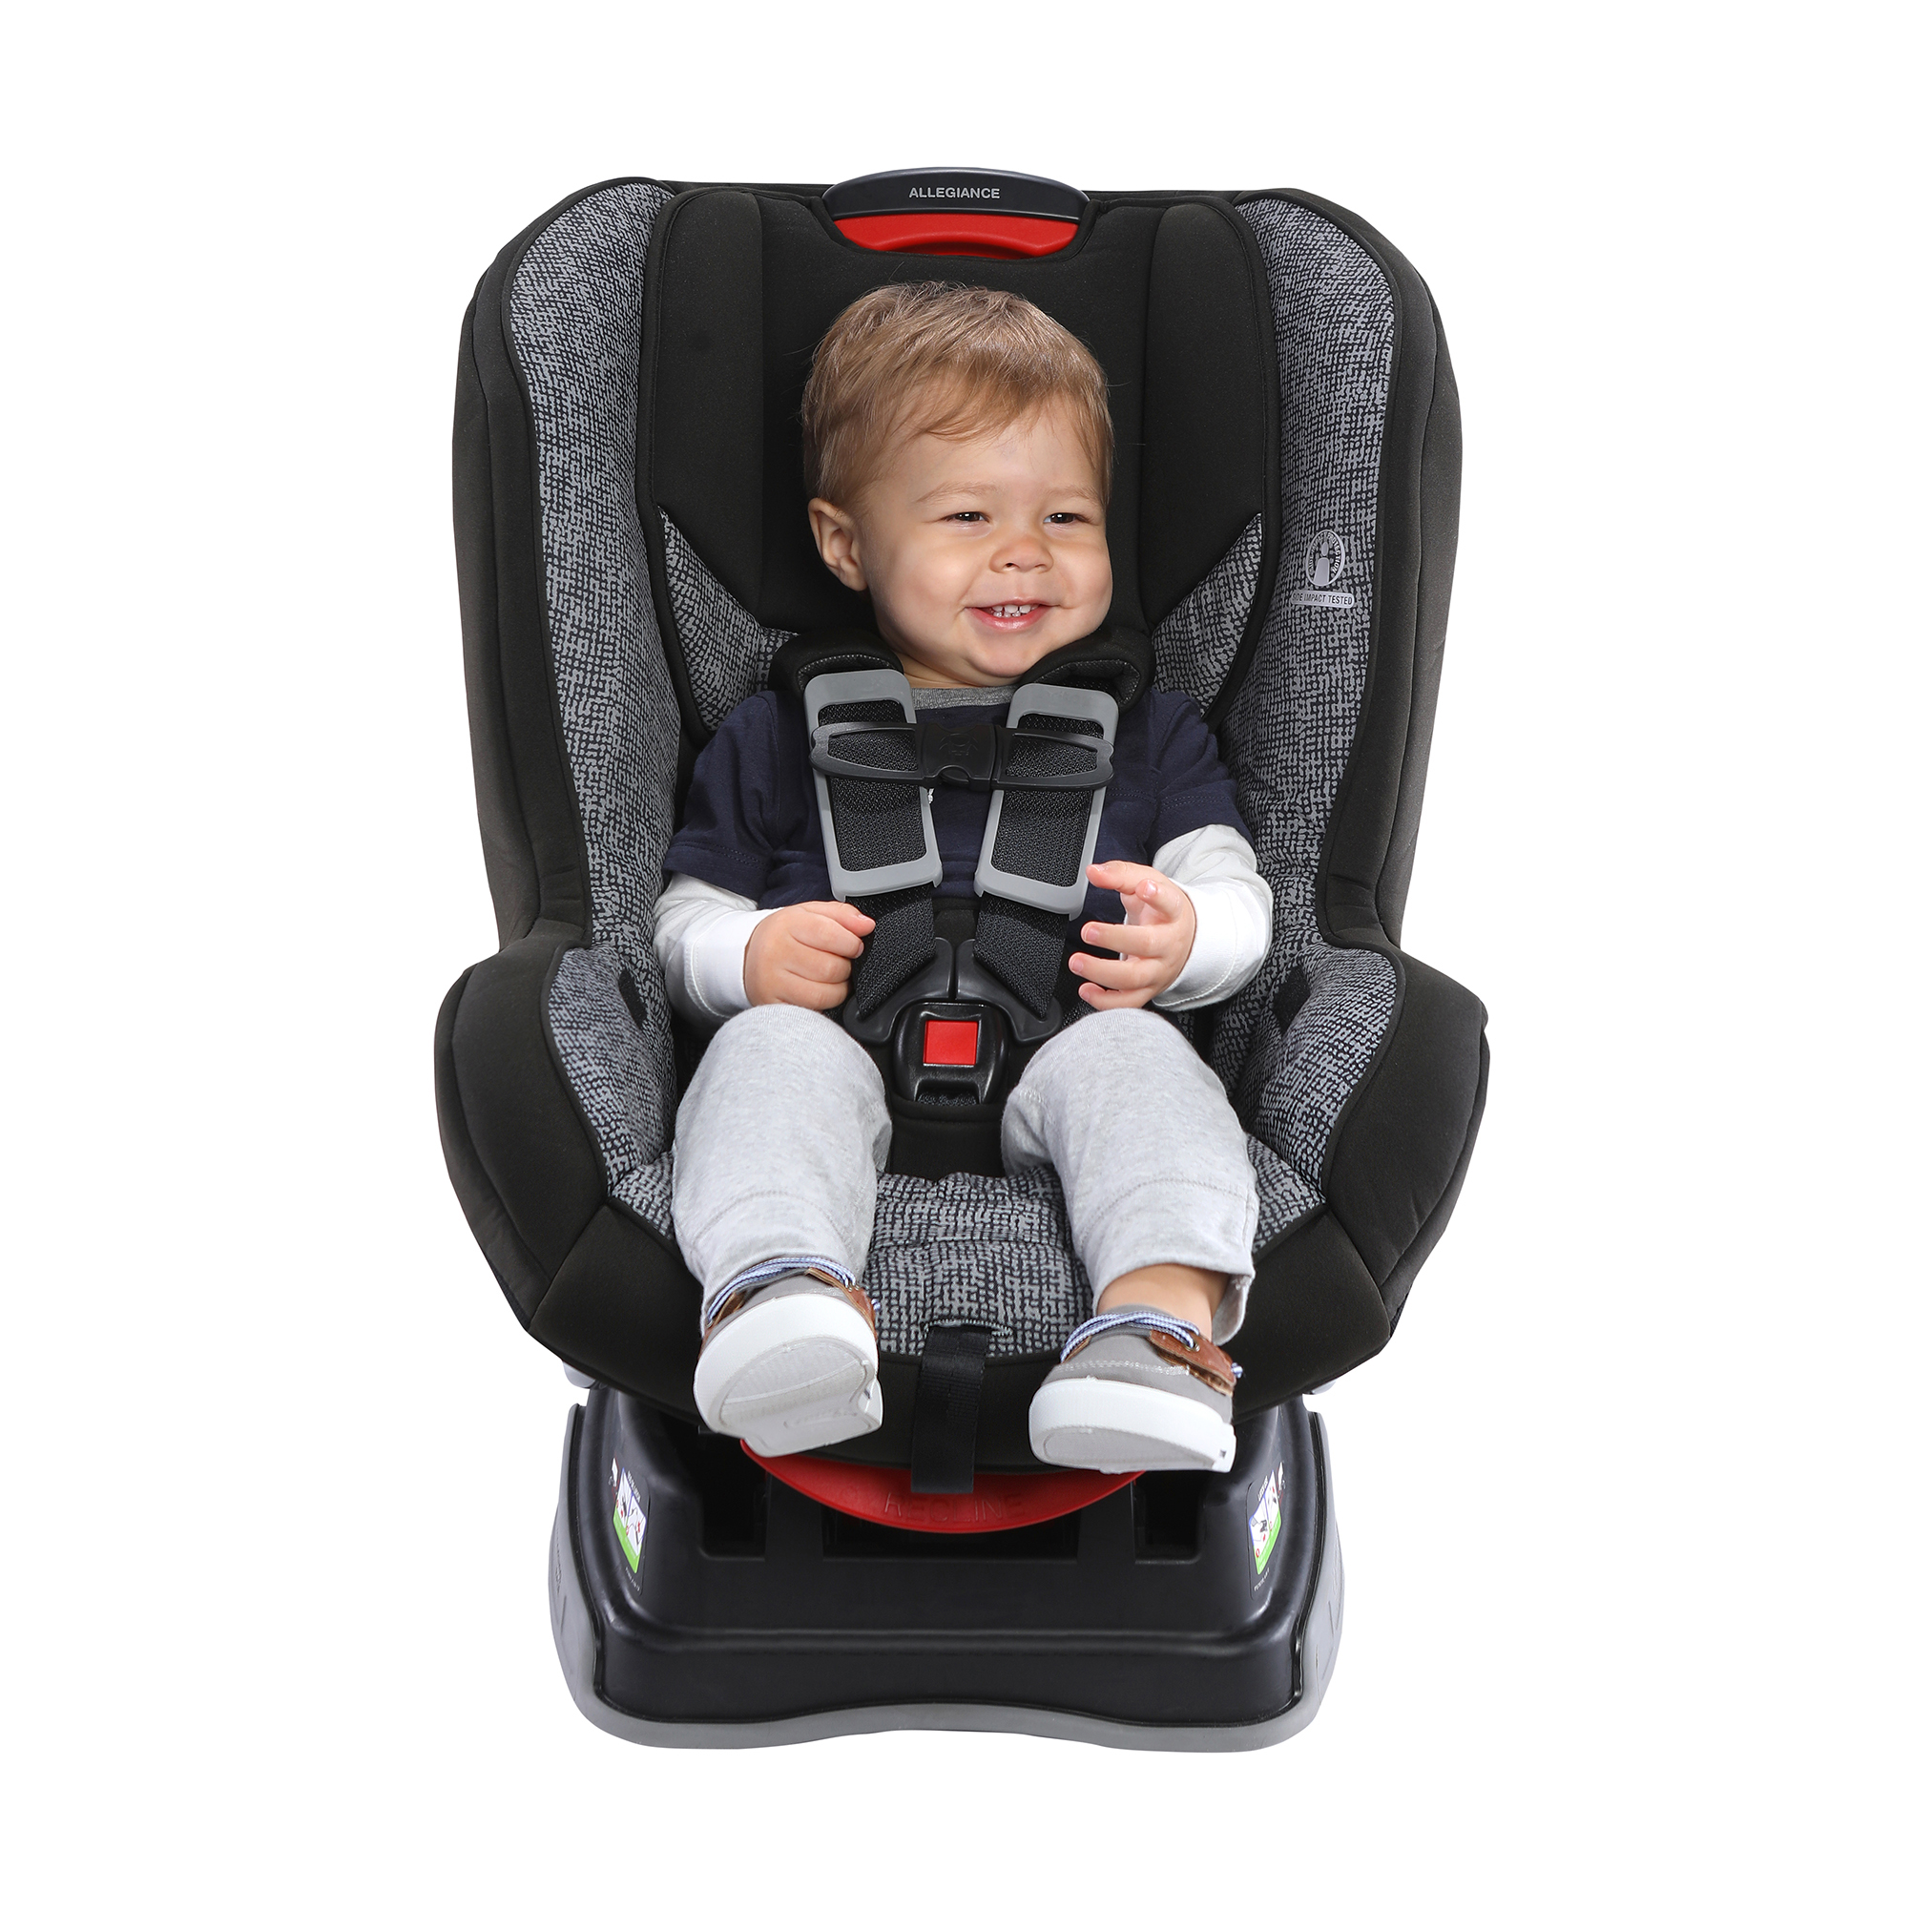 Surprising Allegiance Convertible Car Seat Prism Pdpeps Interior Chair Design Pdpepsorg